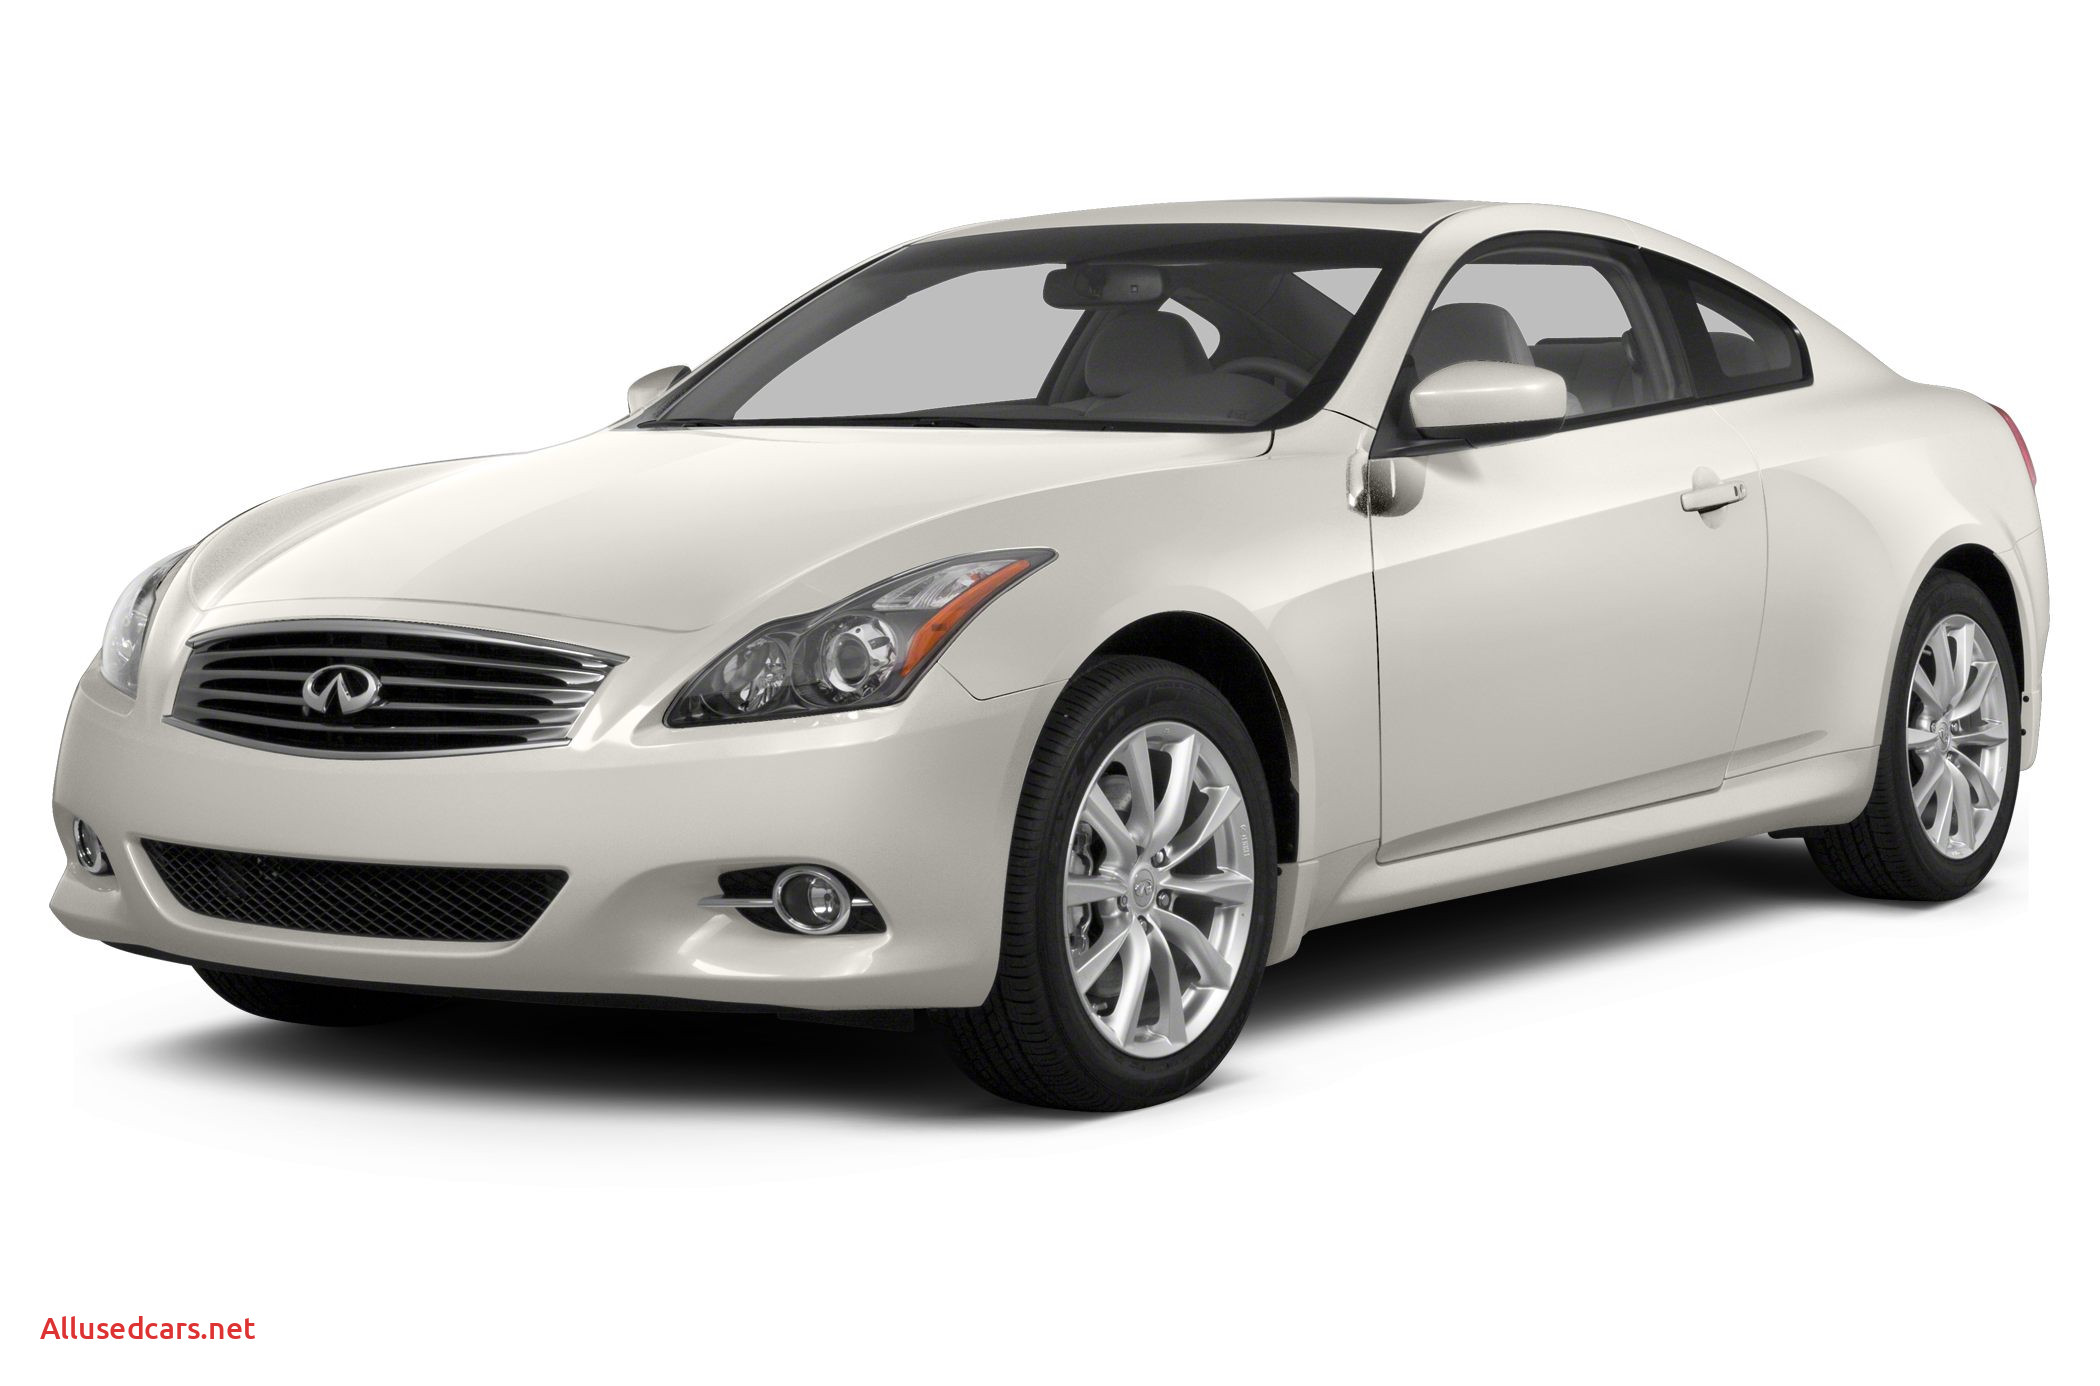 Infiniti G37 Coupe Beautiful 2013 Infiniti G37 Sport 2dr Rear Wheel Drive Coupe Pricing and Options